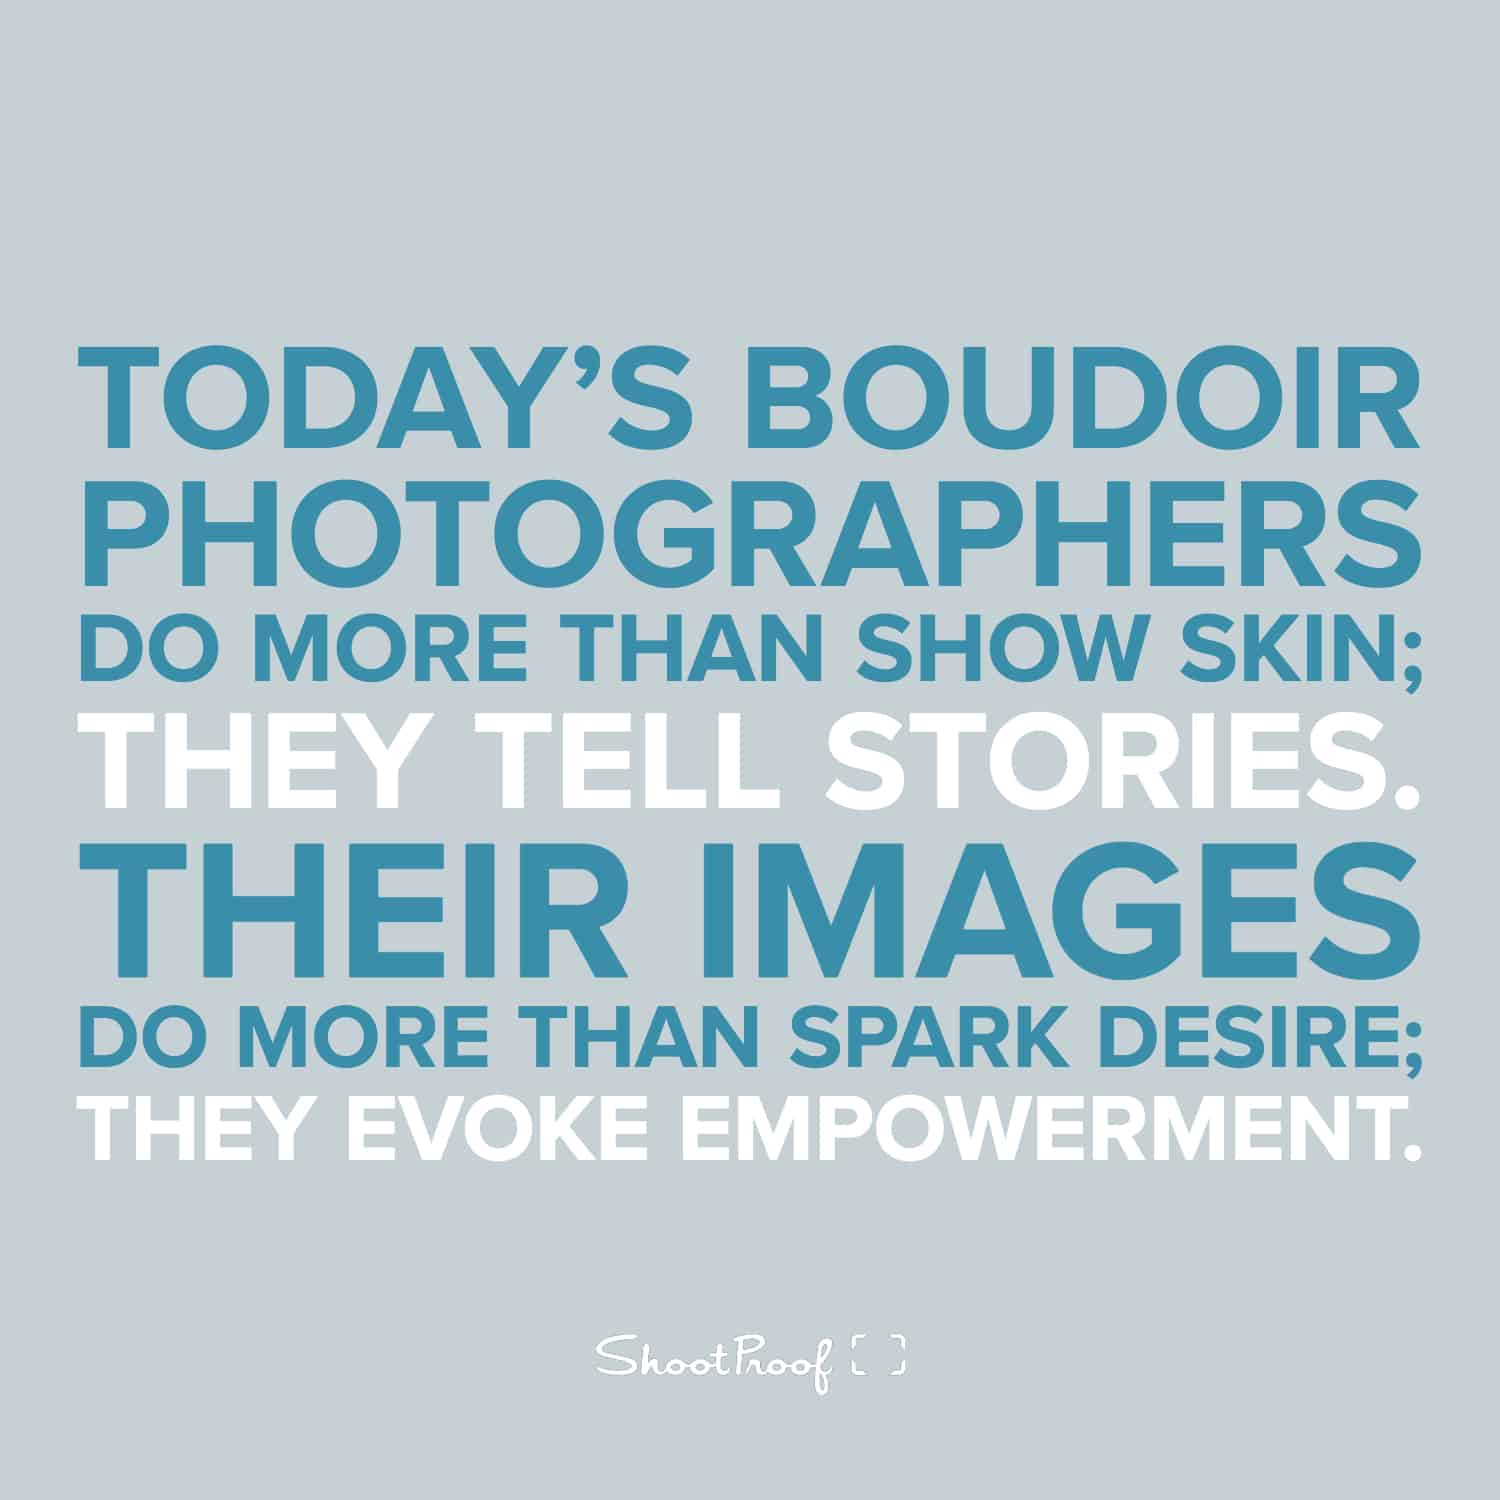 Boudoir Photographers Tell Stories & Empower Their Subjects